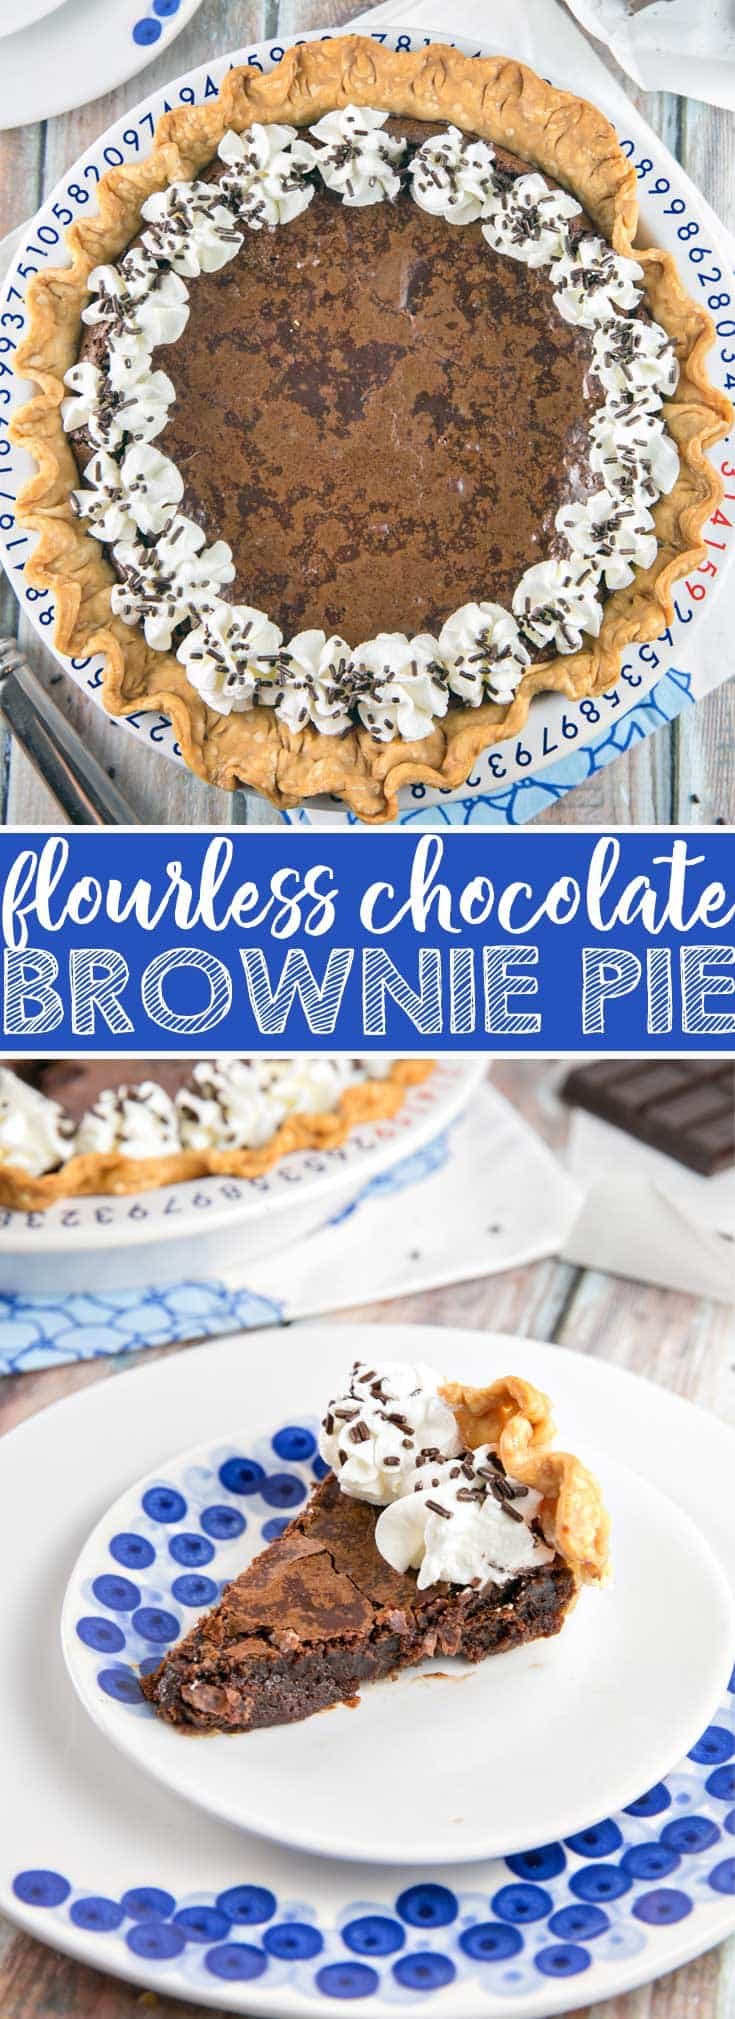 Flourless Gooey Chocolate Brownie Pie: chewy edges, gooey middle - the perfect brownie, baked right into a pie crust. Simple ingredients, one bowl, gluten free. {Bunsen Burner Bakery} #brownie #pie #chocolate #glutenfree #browniepie